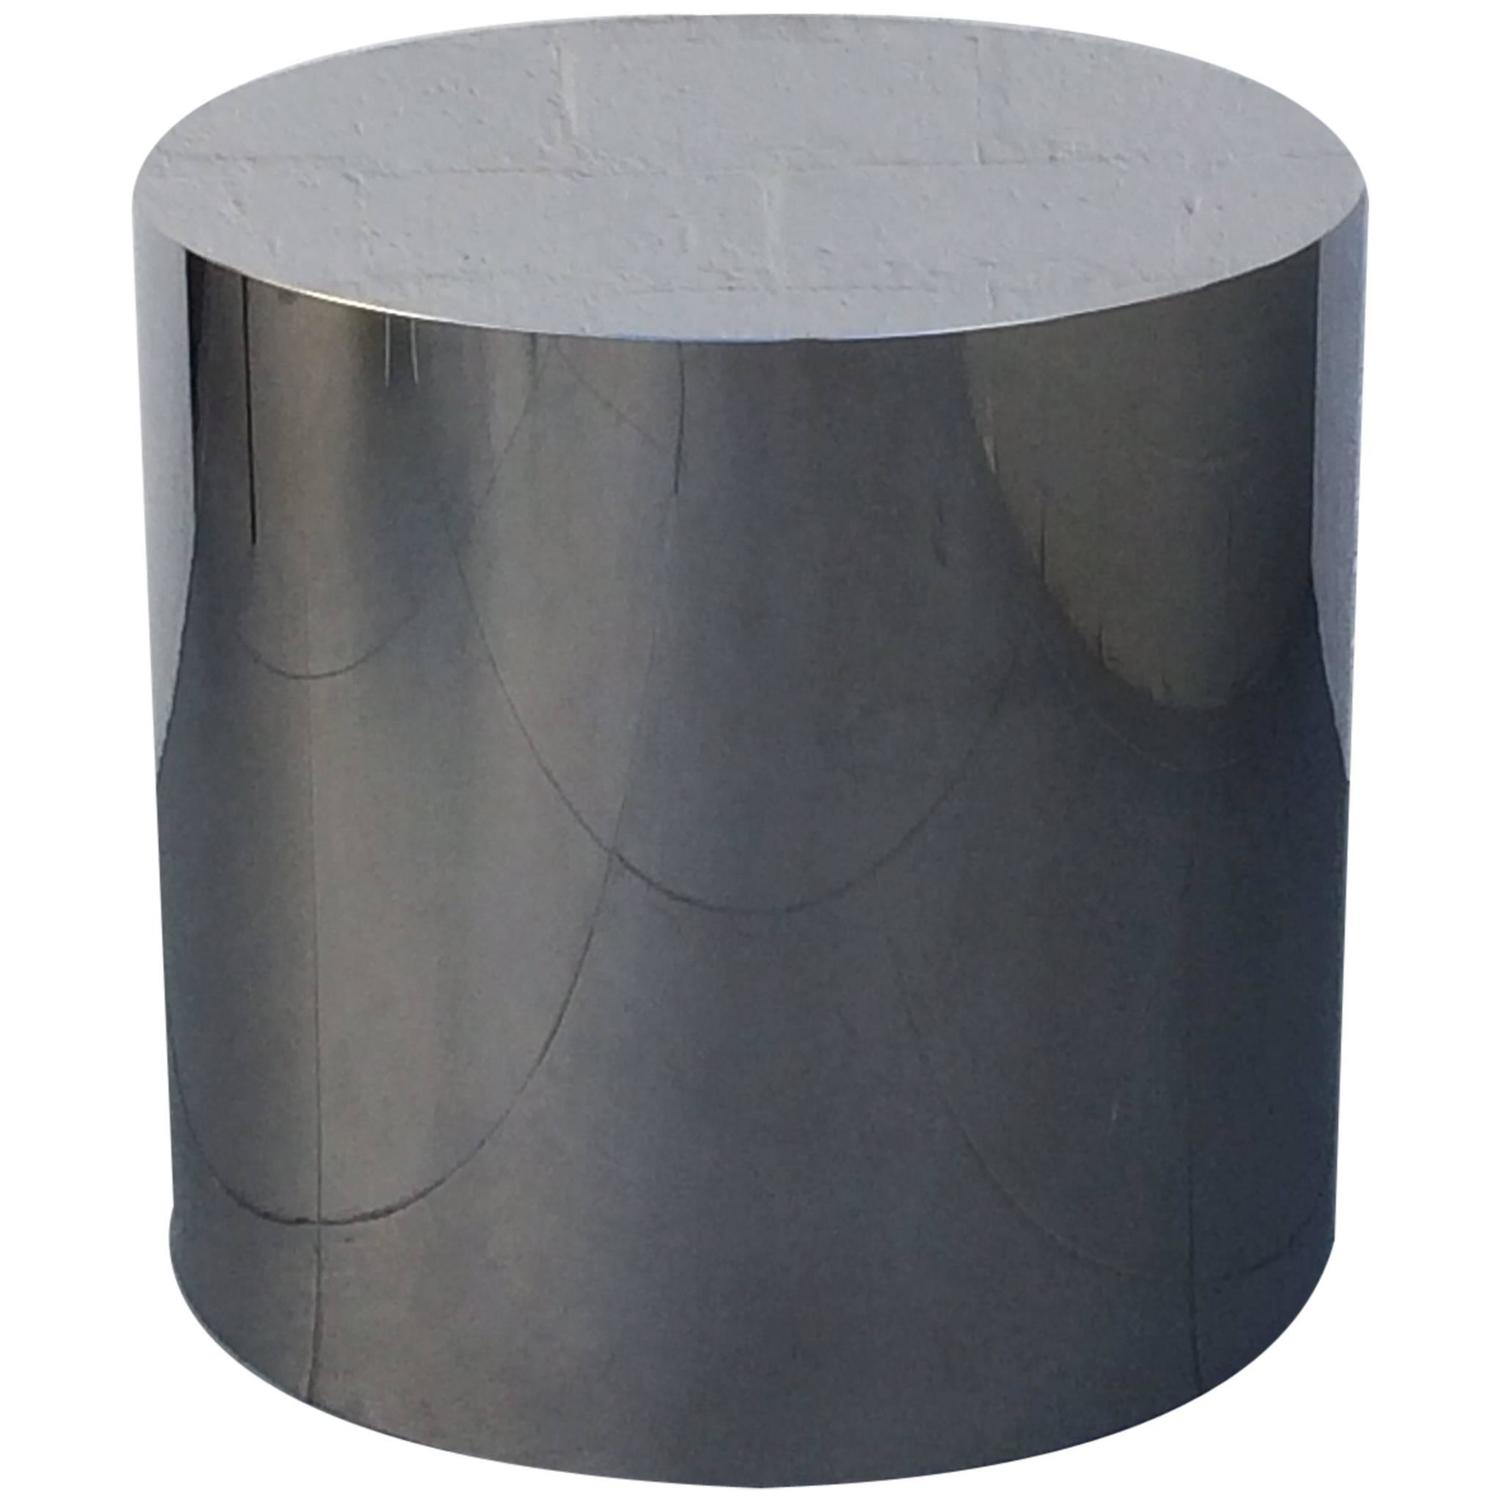 Large Seamless Polished Stainless Steel Drum Table Base By Pace Collection At 1stdibs